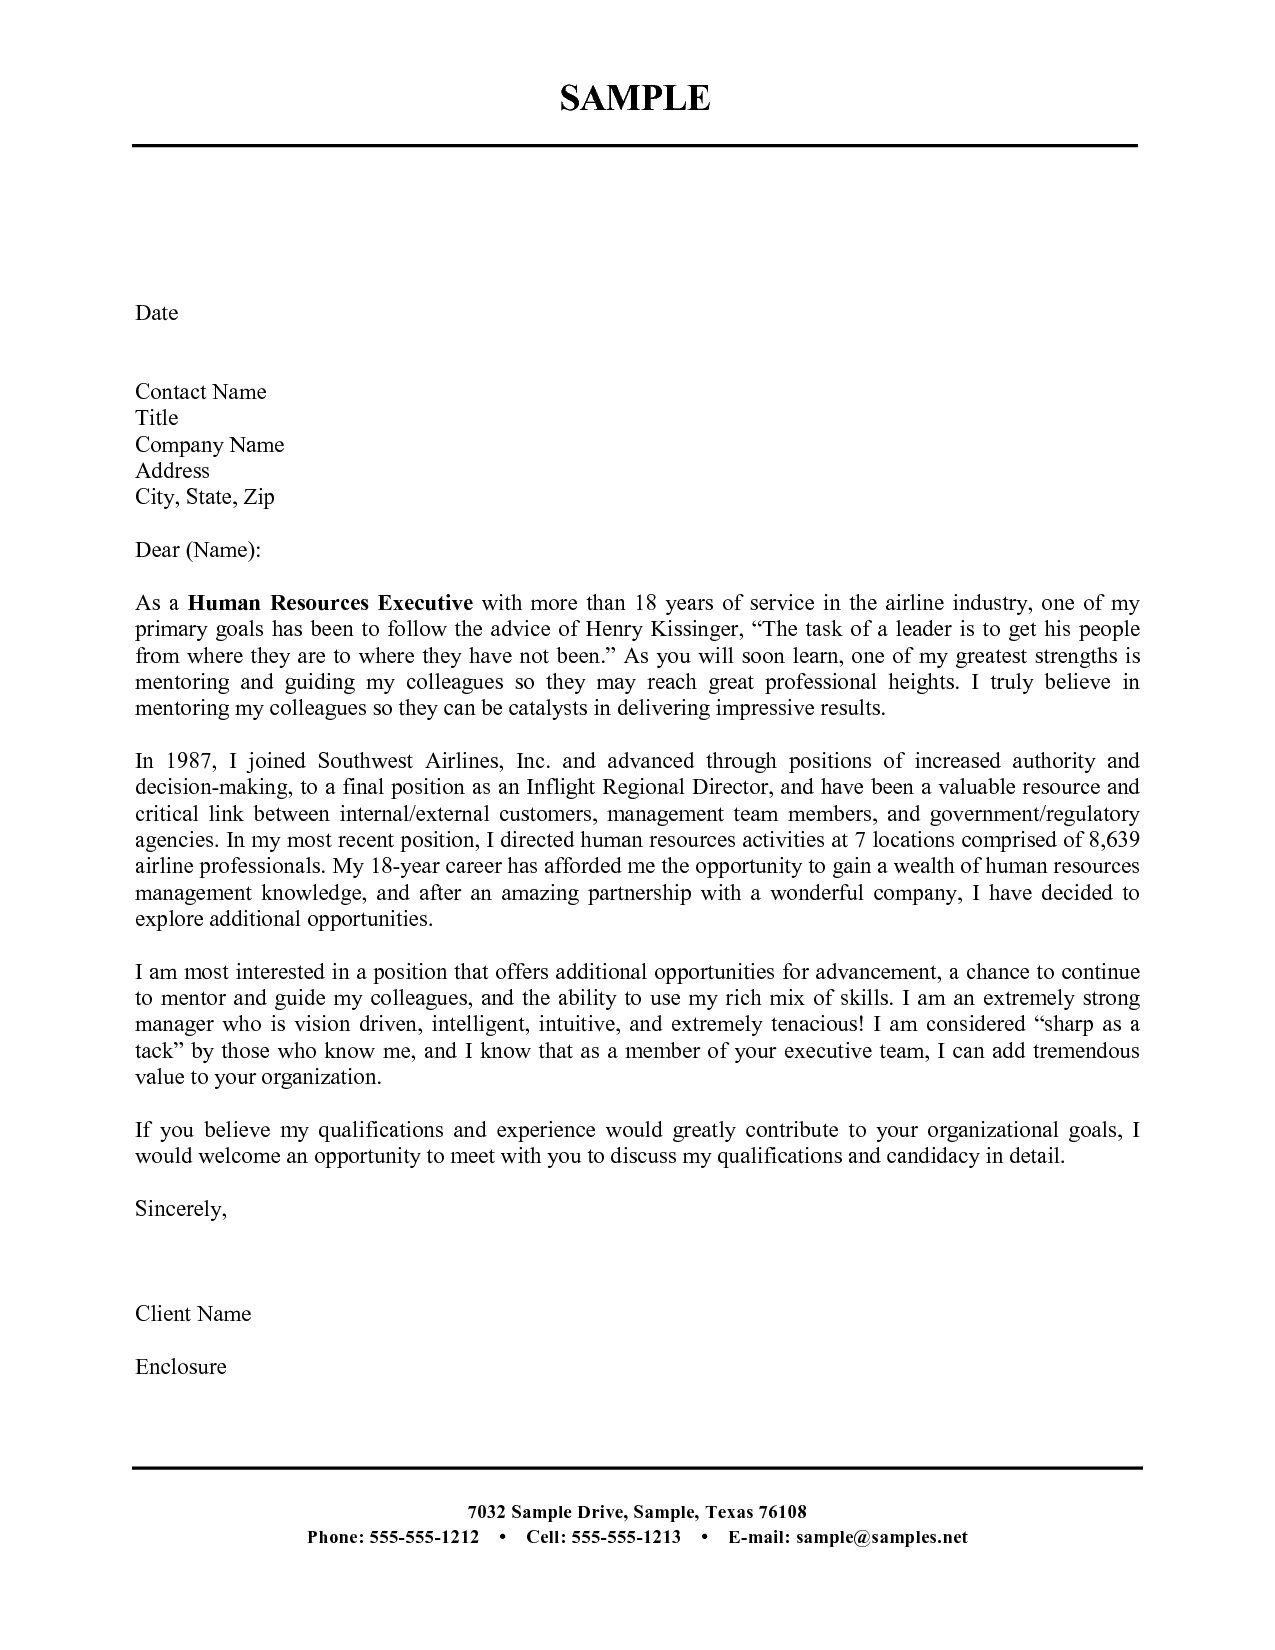 002 Incredible Letter Template Microsoft Word Highest Clarity  Naval Format 2010 2007Full